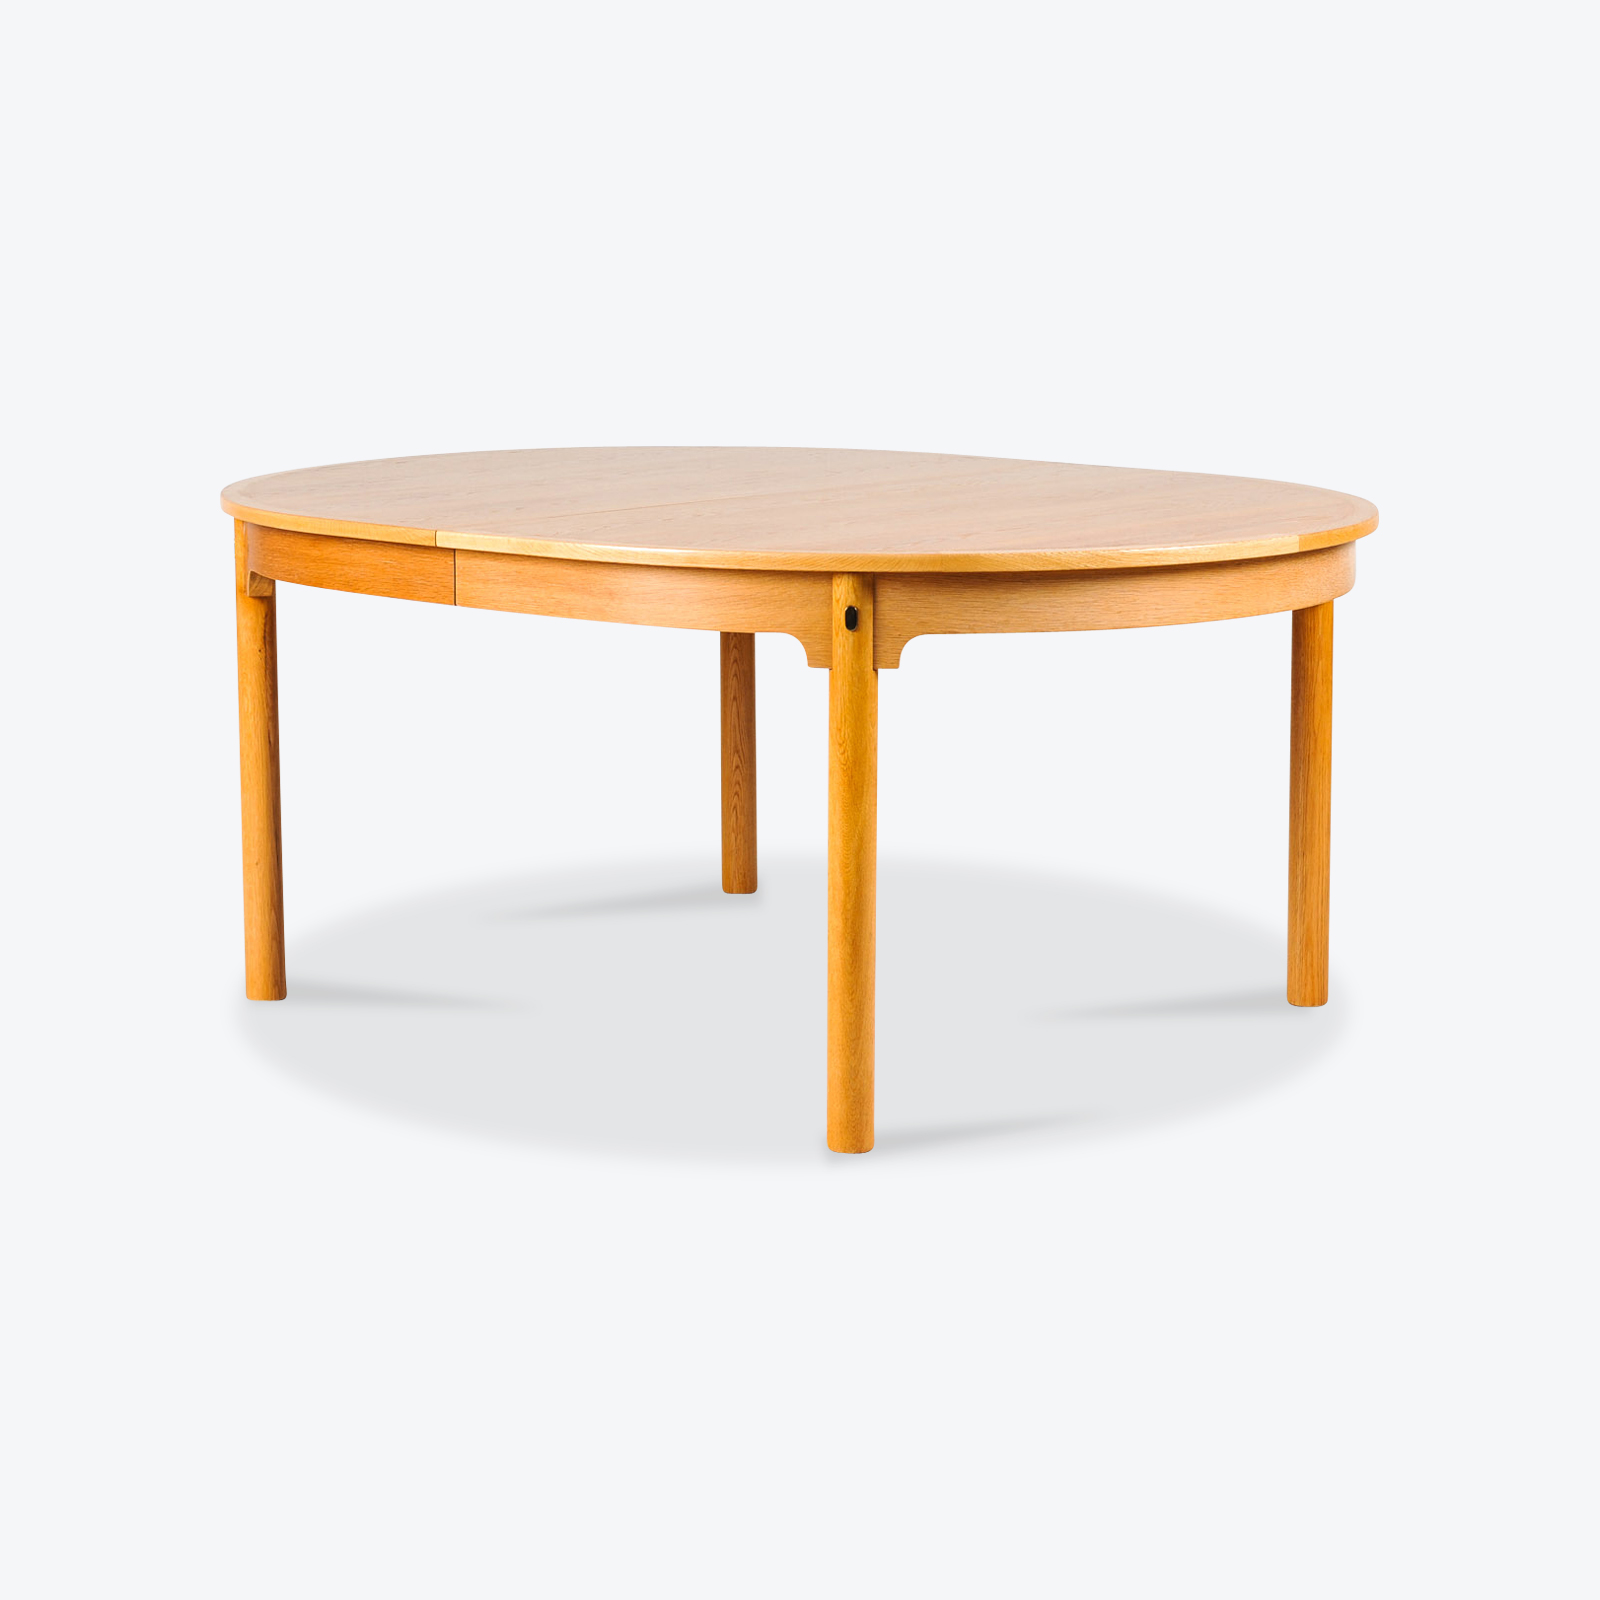 Extra Large Dining Table By Borge Mogensesn In Oak With Four Leaves 1960s Denmark 00